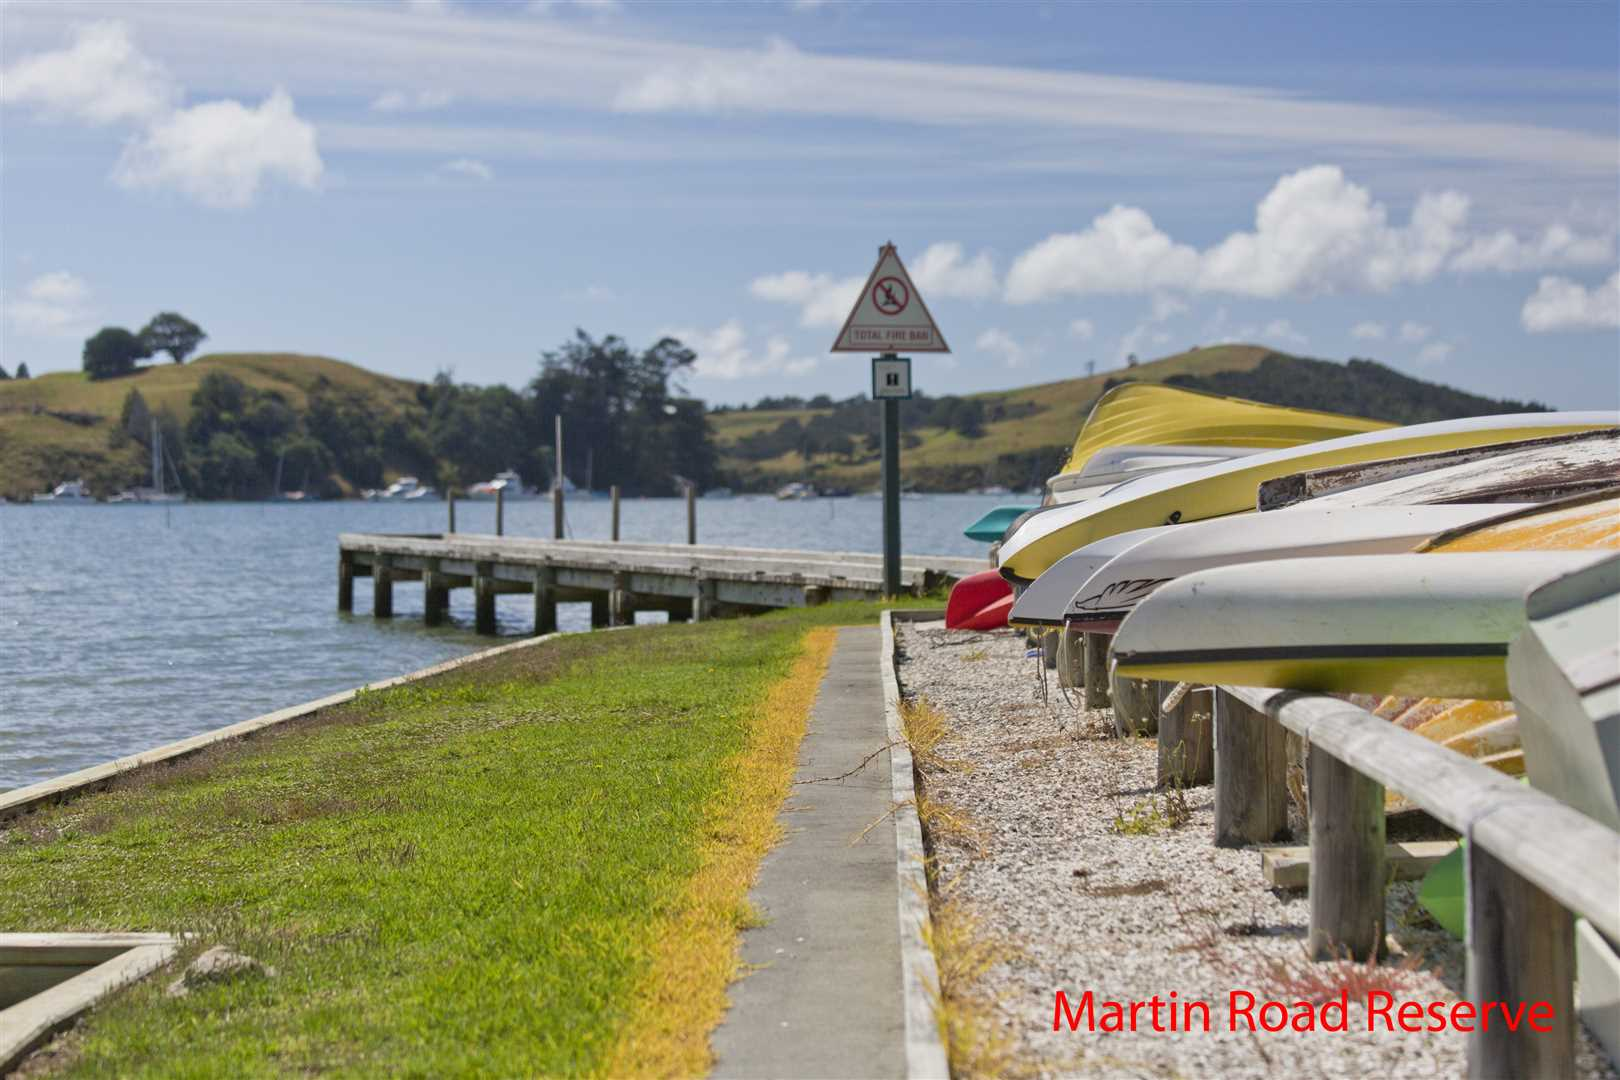 store your dinghy/kayak on community boat rack